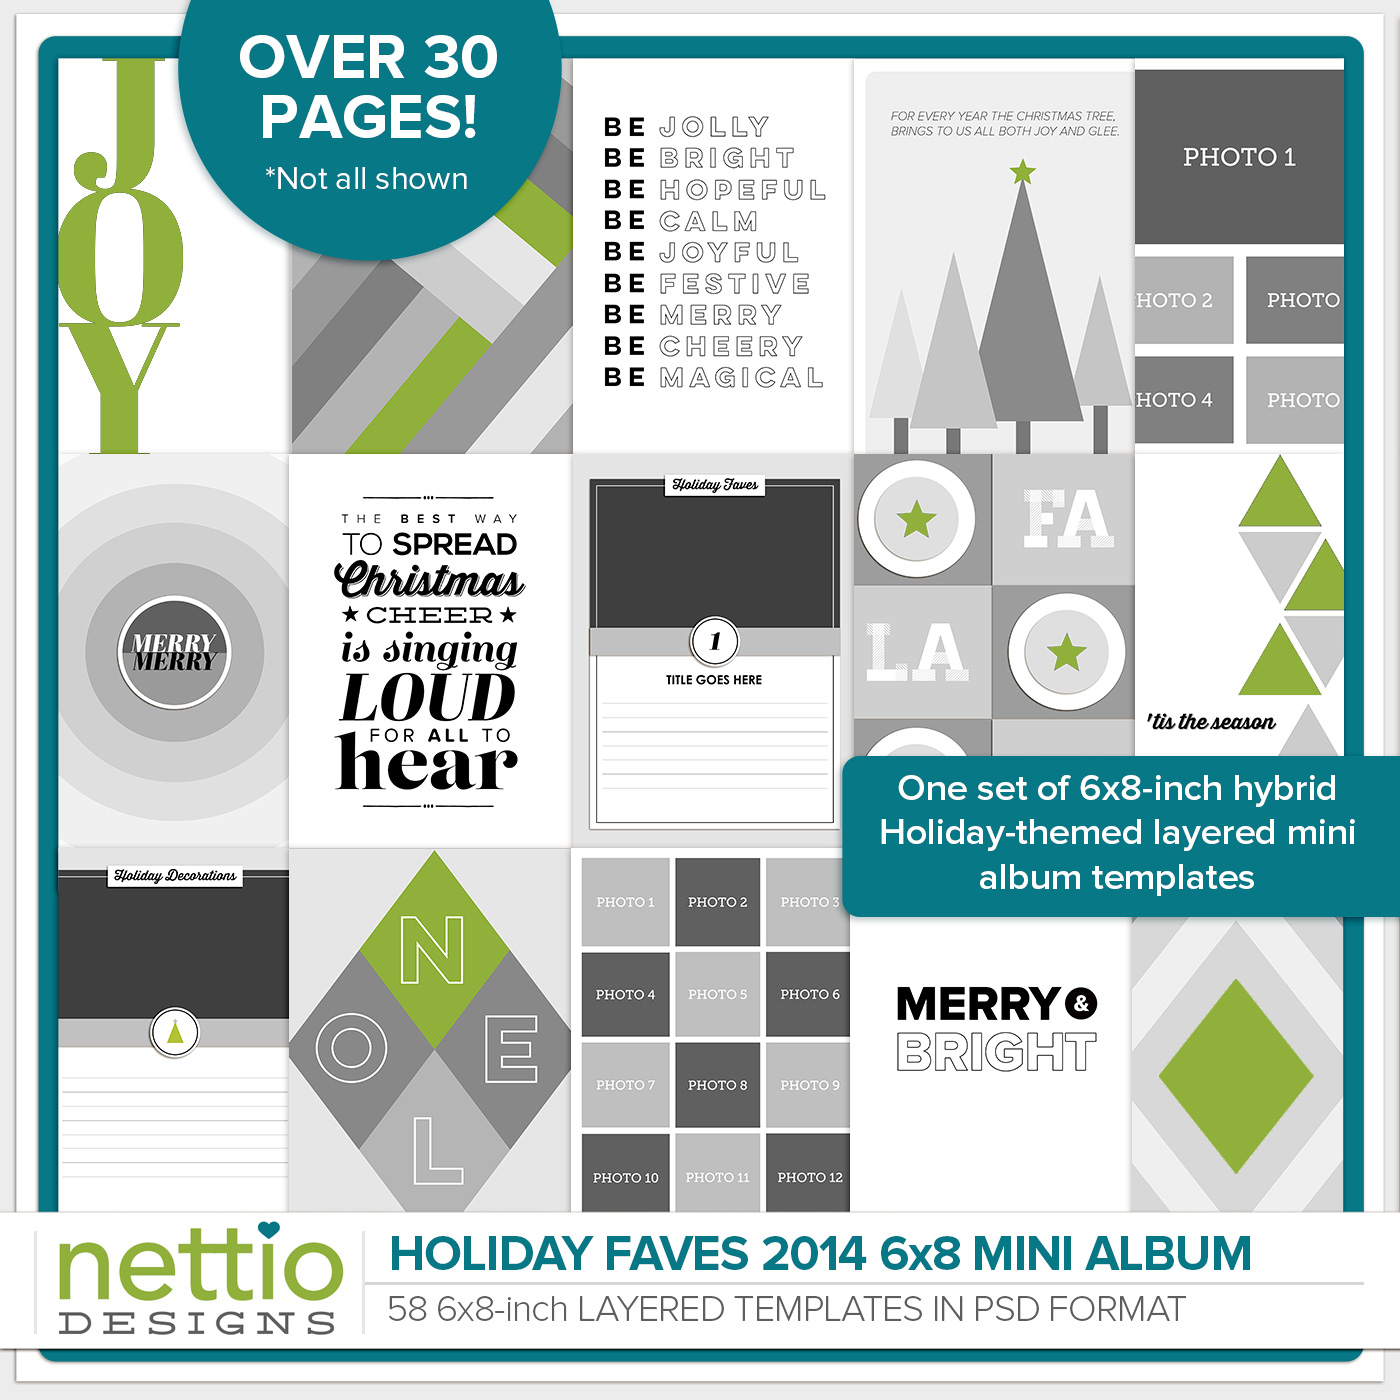 nettiodesigns_HolidayFavesMini14-preview